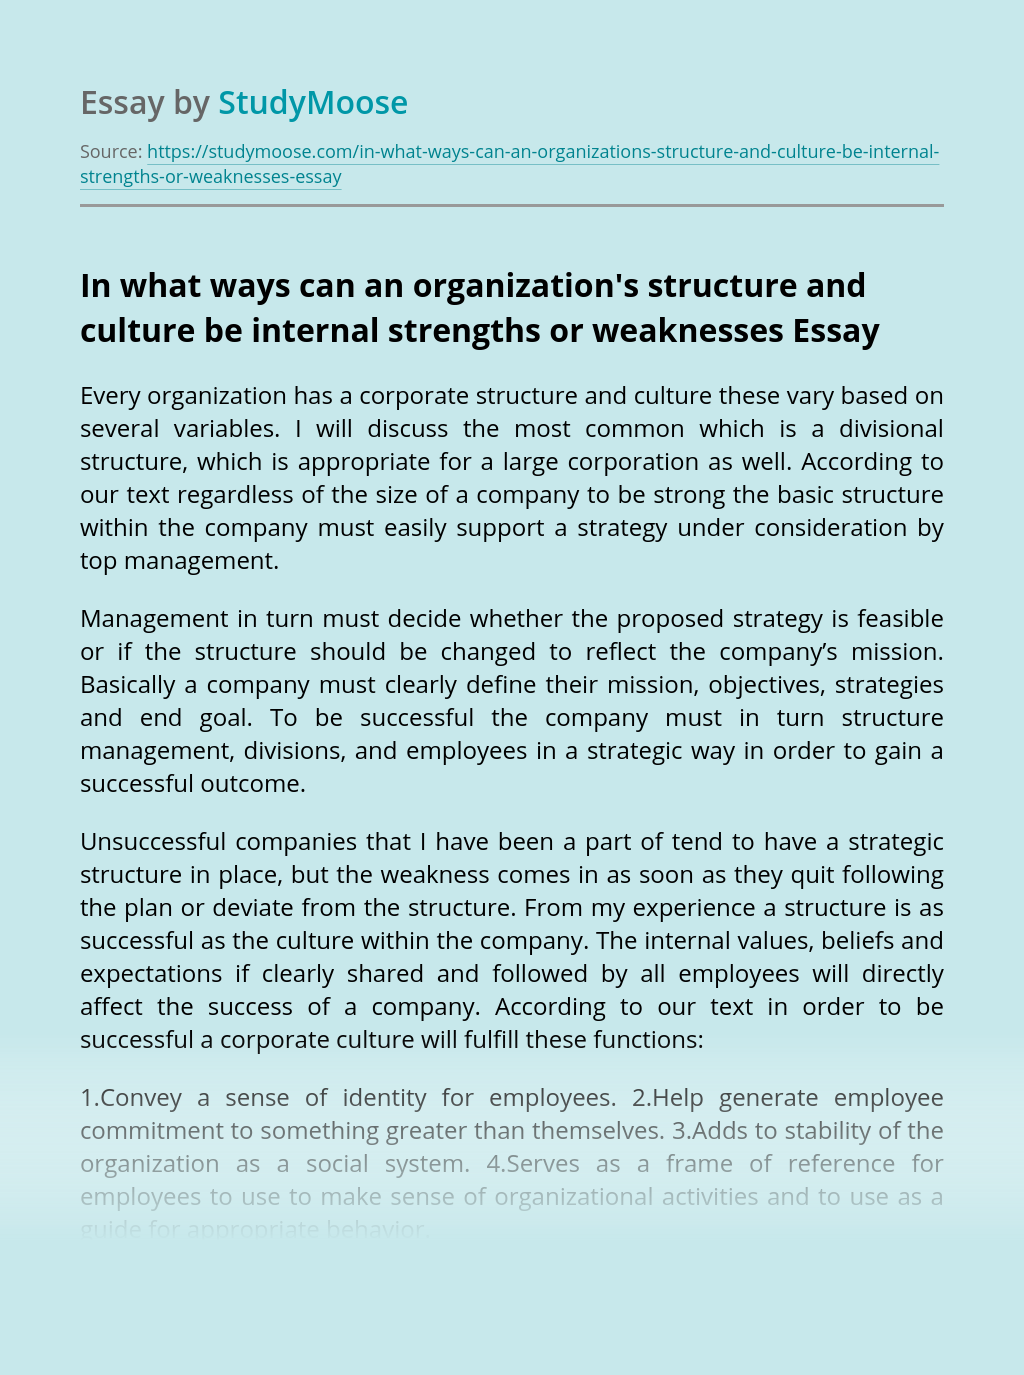 In what ways can an organization's structure and culture be internal strengths or weaknesses